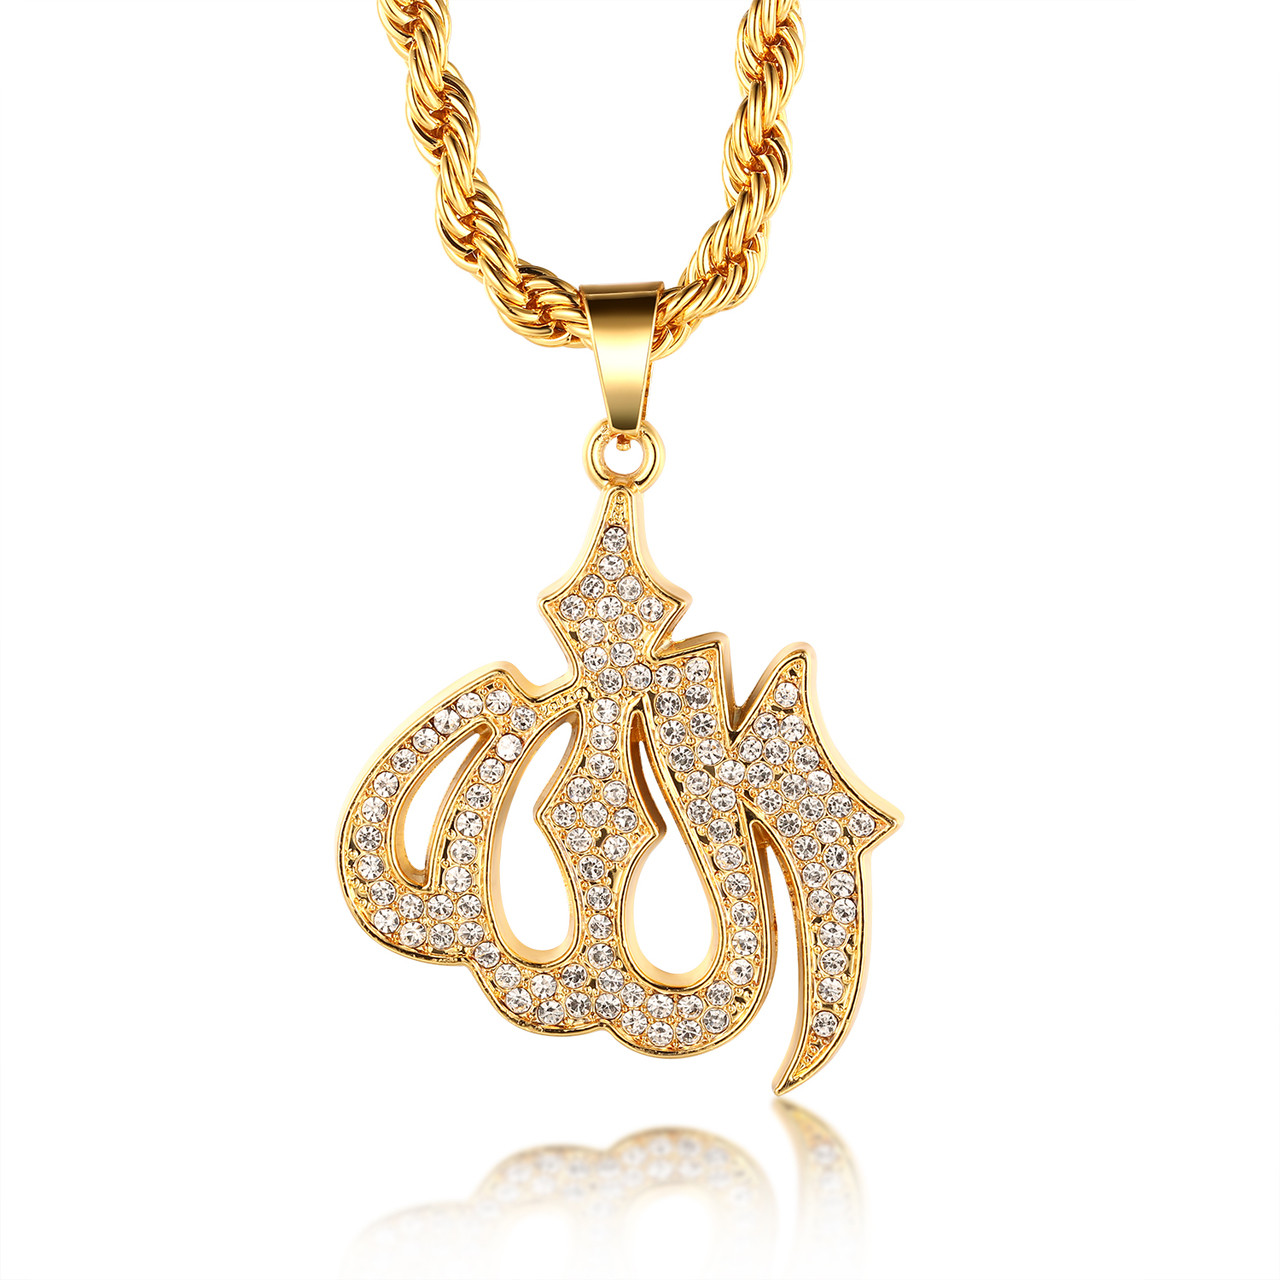 Gold bless all 18k real gold plated allah islam pendant necklace halukakah gold bless all 18k real gold plated allah islam pendant necklace with free rope chain aloadofball Choice Image